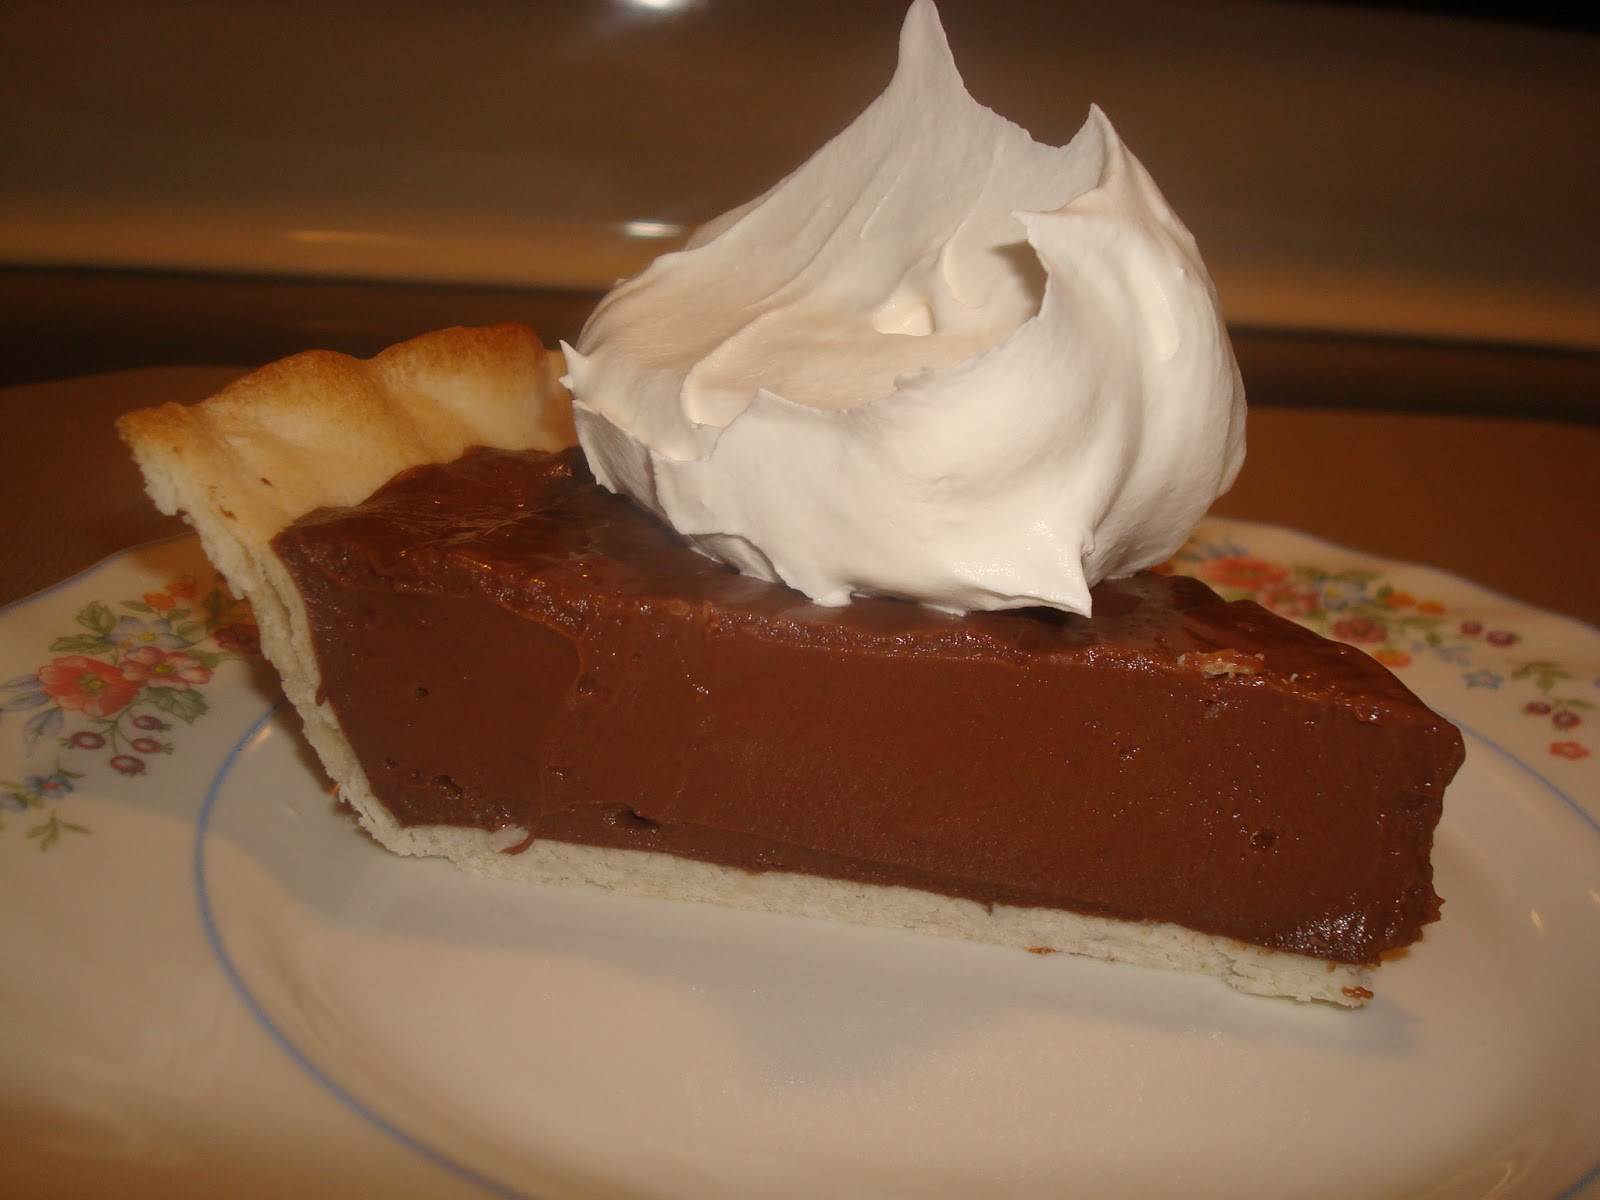 mocha me: Chocolate Cream Pie (with sweetened condensed milk)